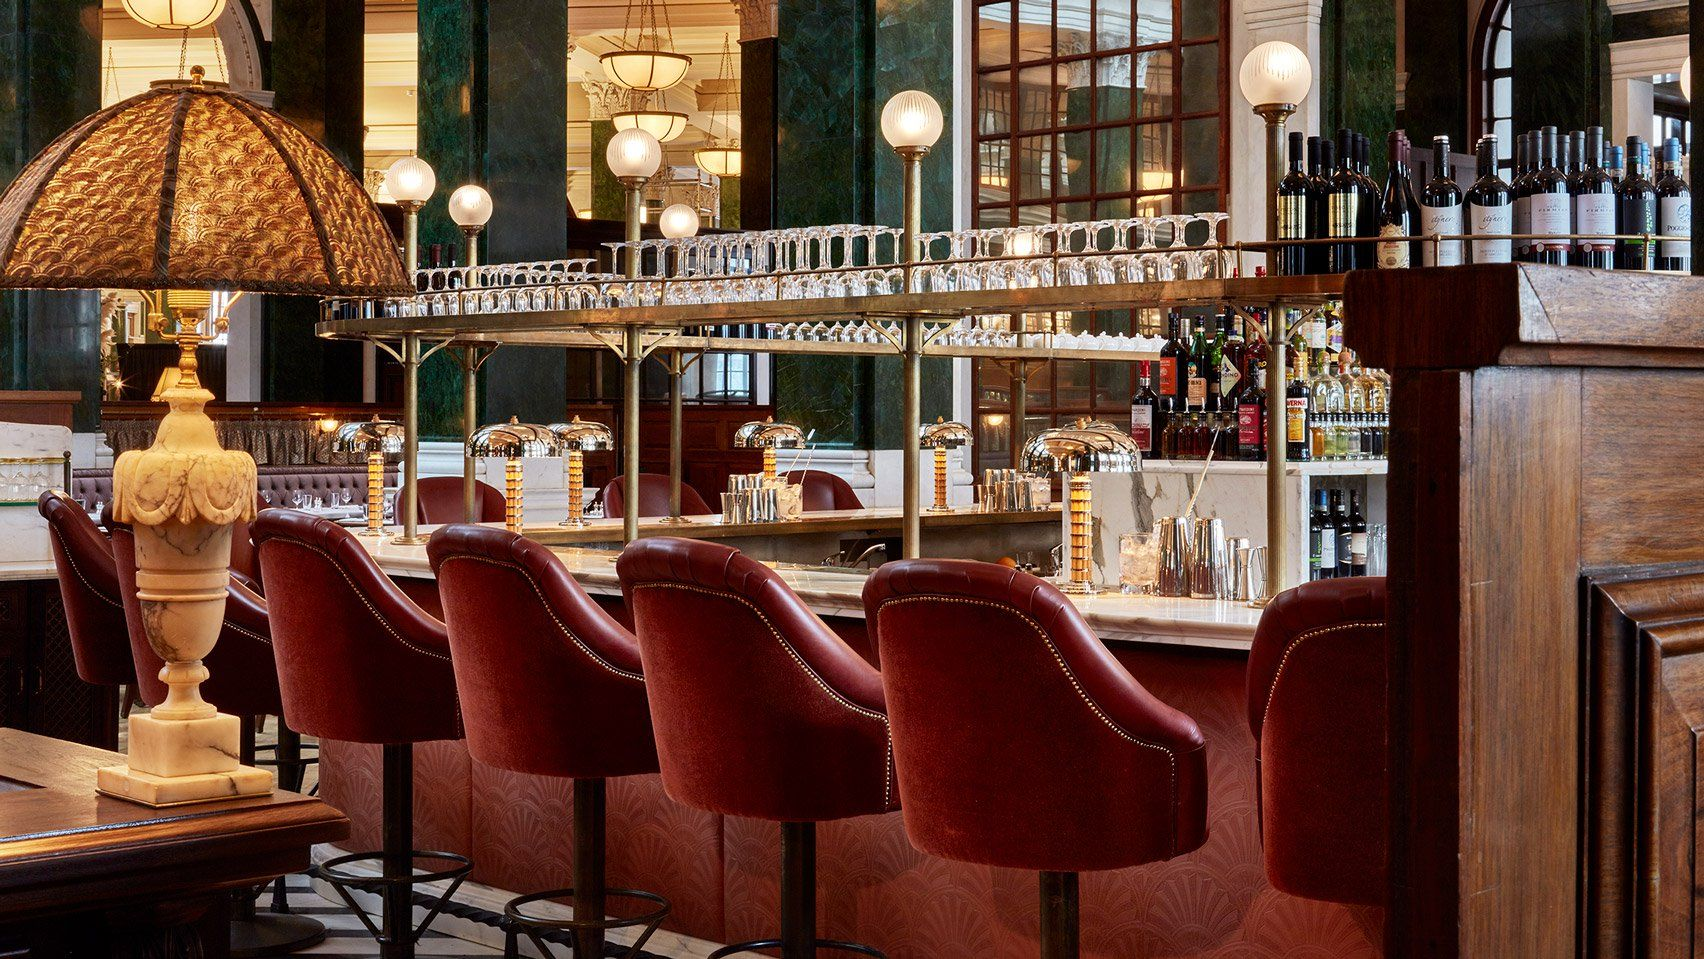 Edwin Lutyens Midland Bank Building In London Has Been Converted Into A Lavish Hotel And Members Club By Soho House Co And The Sydell Group Luxury Hotel Design Luxury Bar